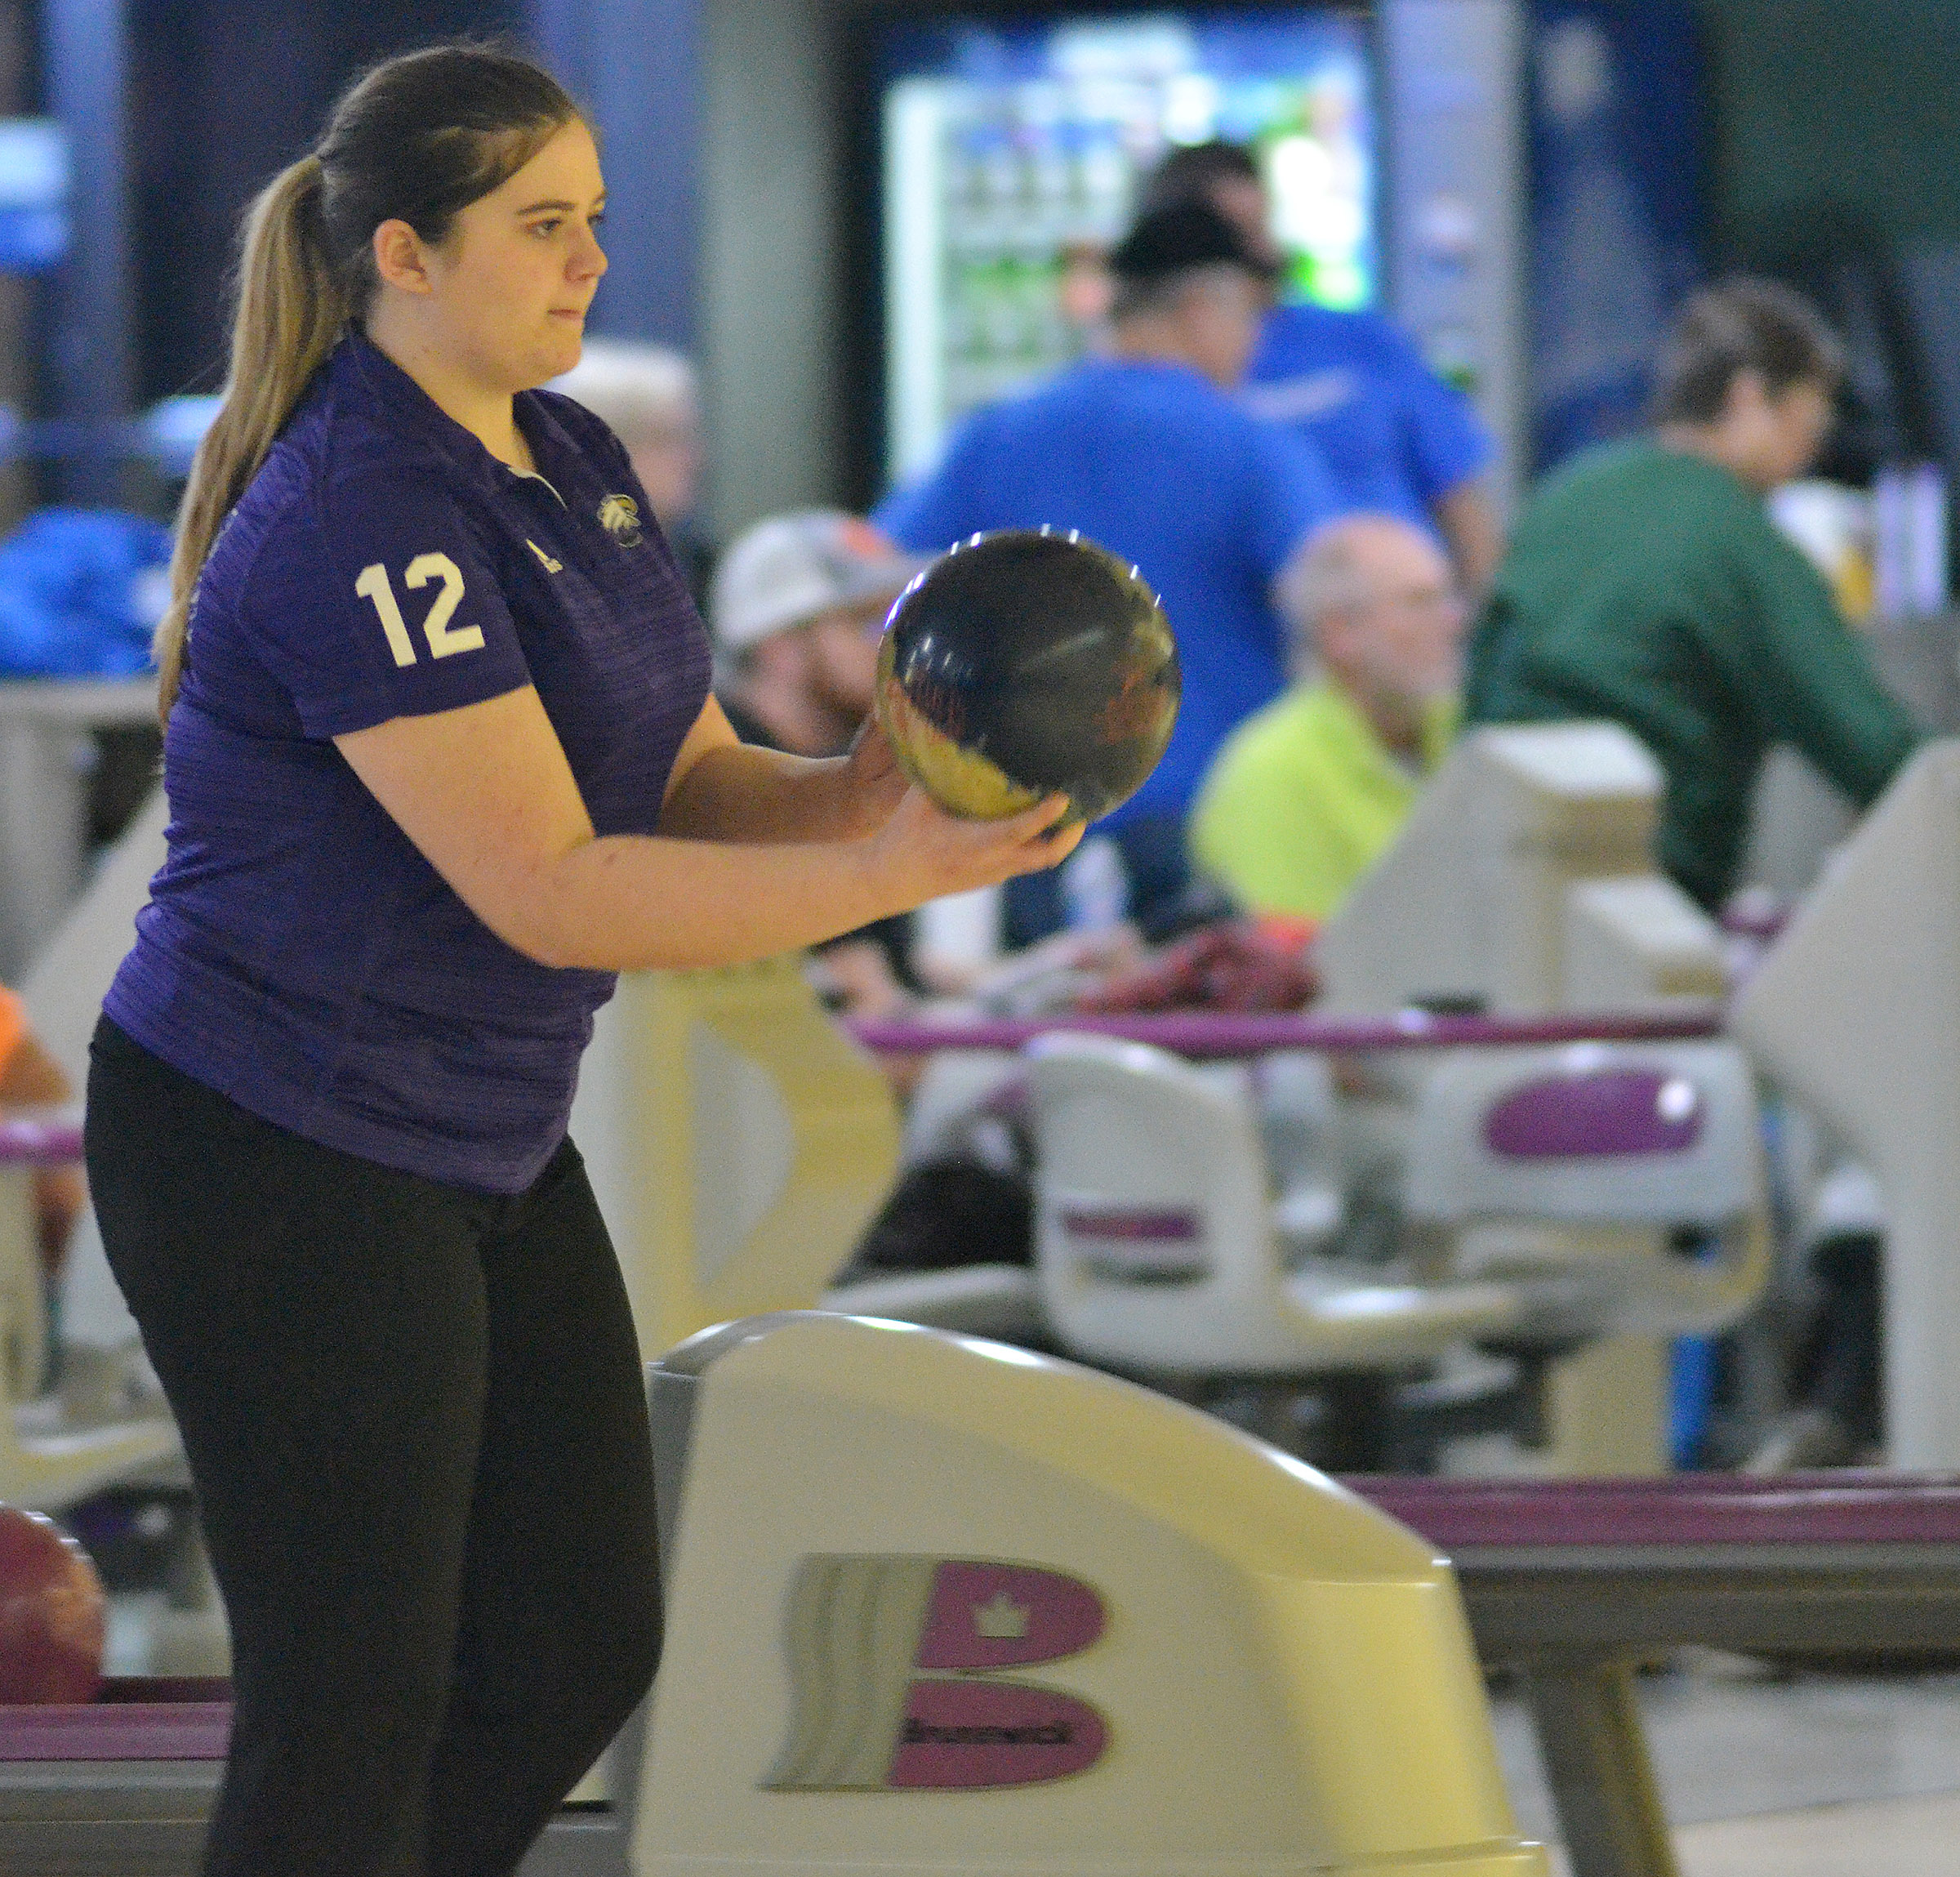 CHS senior Vivian Brown bowls.